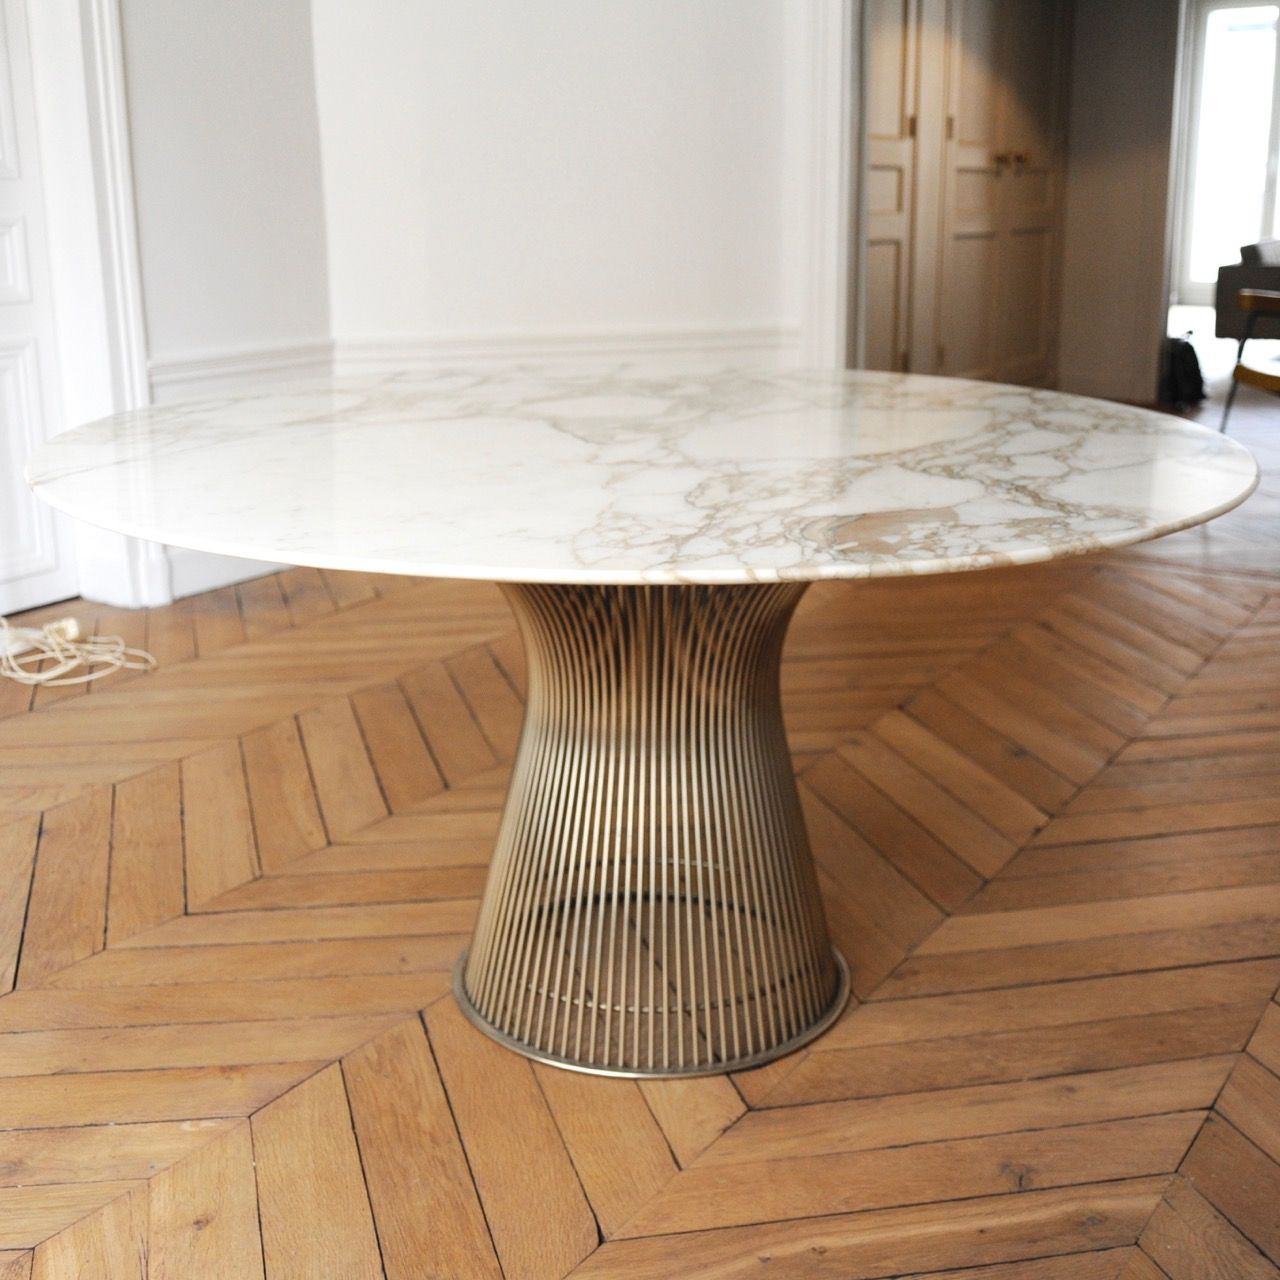 Table Warren Platner Mesa De Jantar Decoracao Mesa